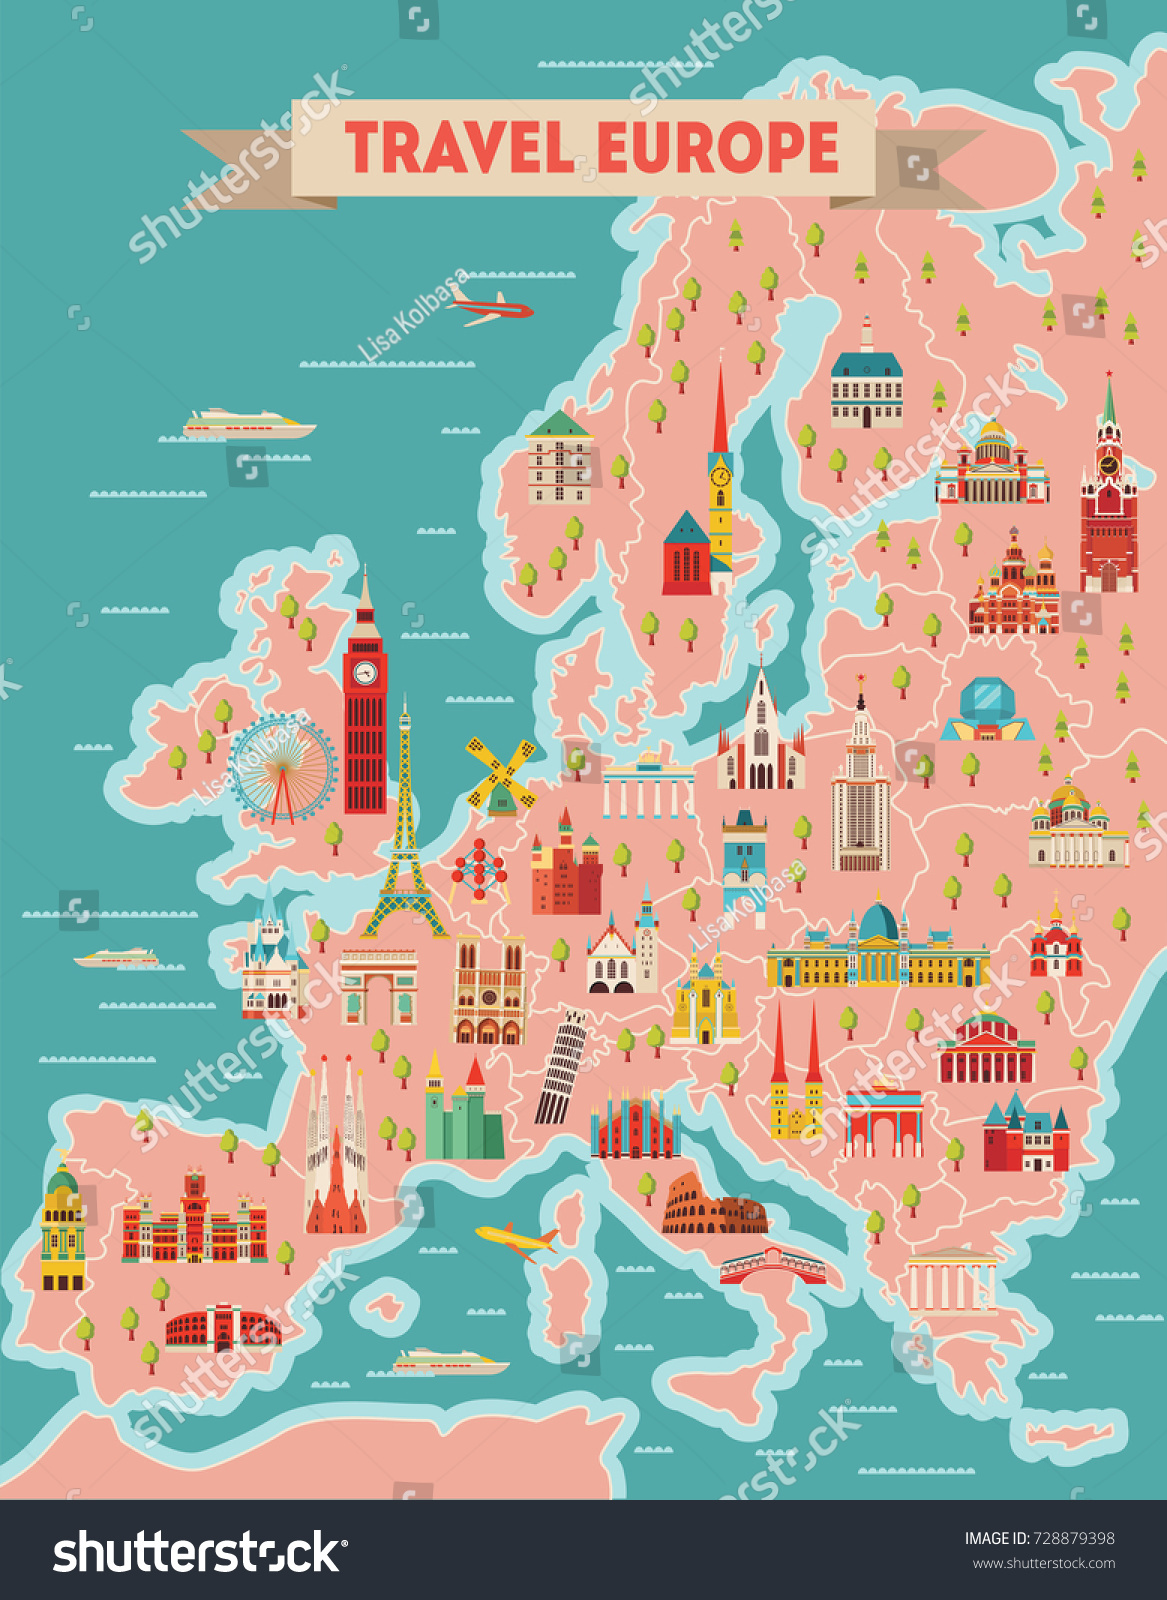 Europe Travel Map Poster Travel Tourism Stock Vector Royalty Free